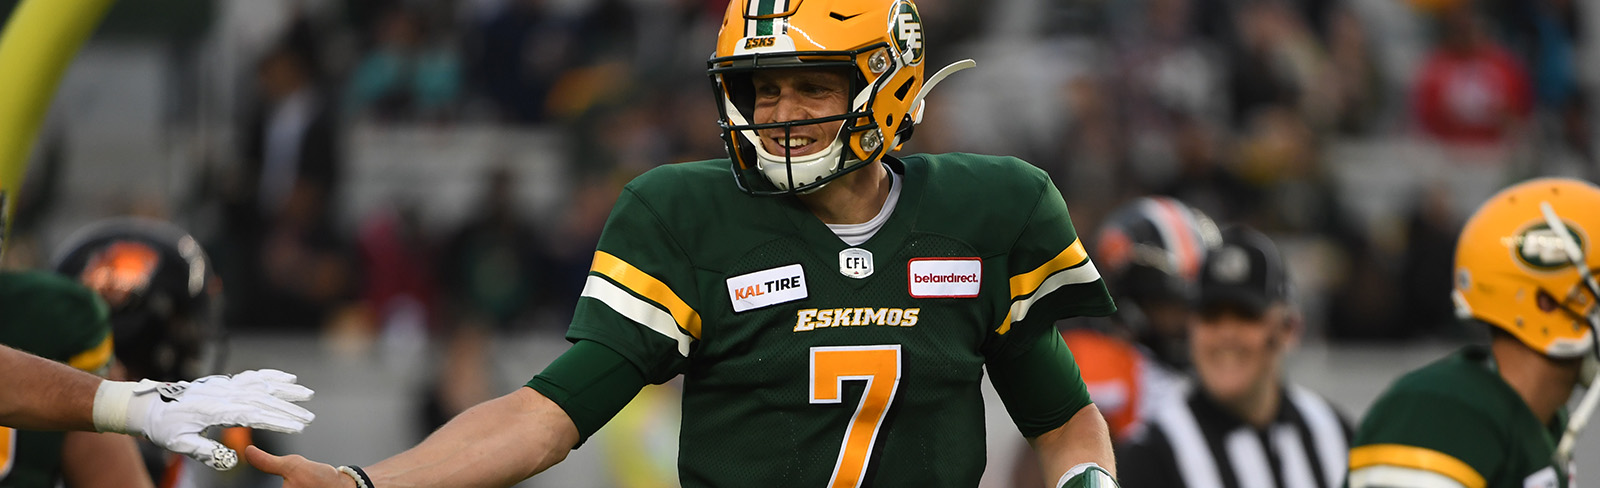 Eskimos Activate Trevor Harris From Six-Game Injured List - Edmonton Eskimos